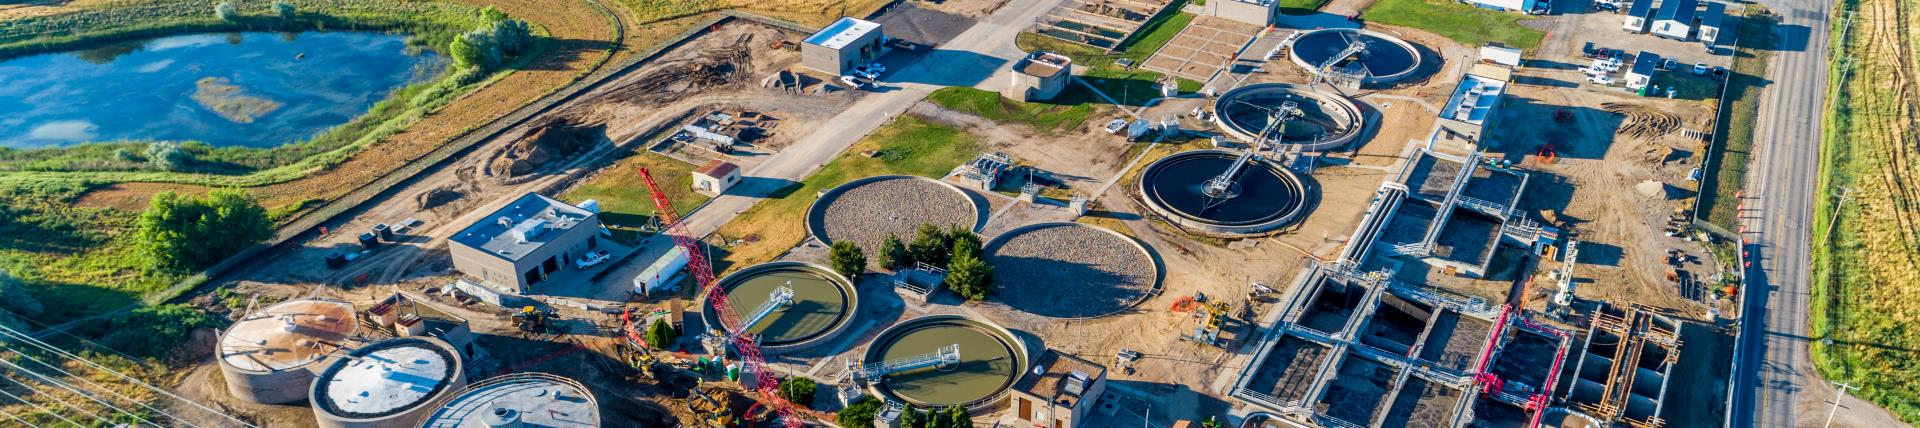 Loveland Wastewater Treatment Plant Ariel